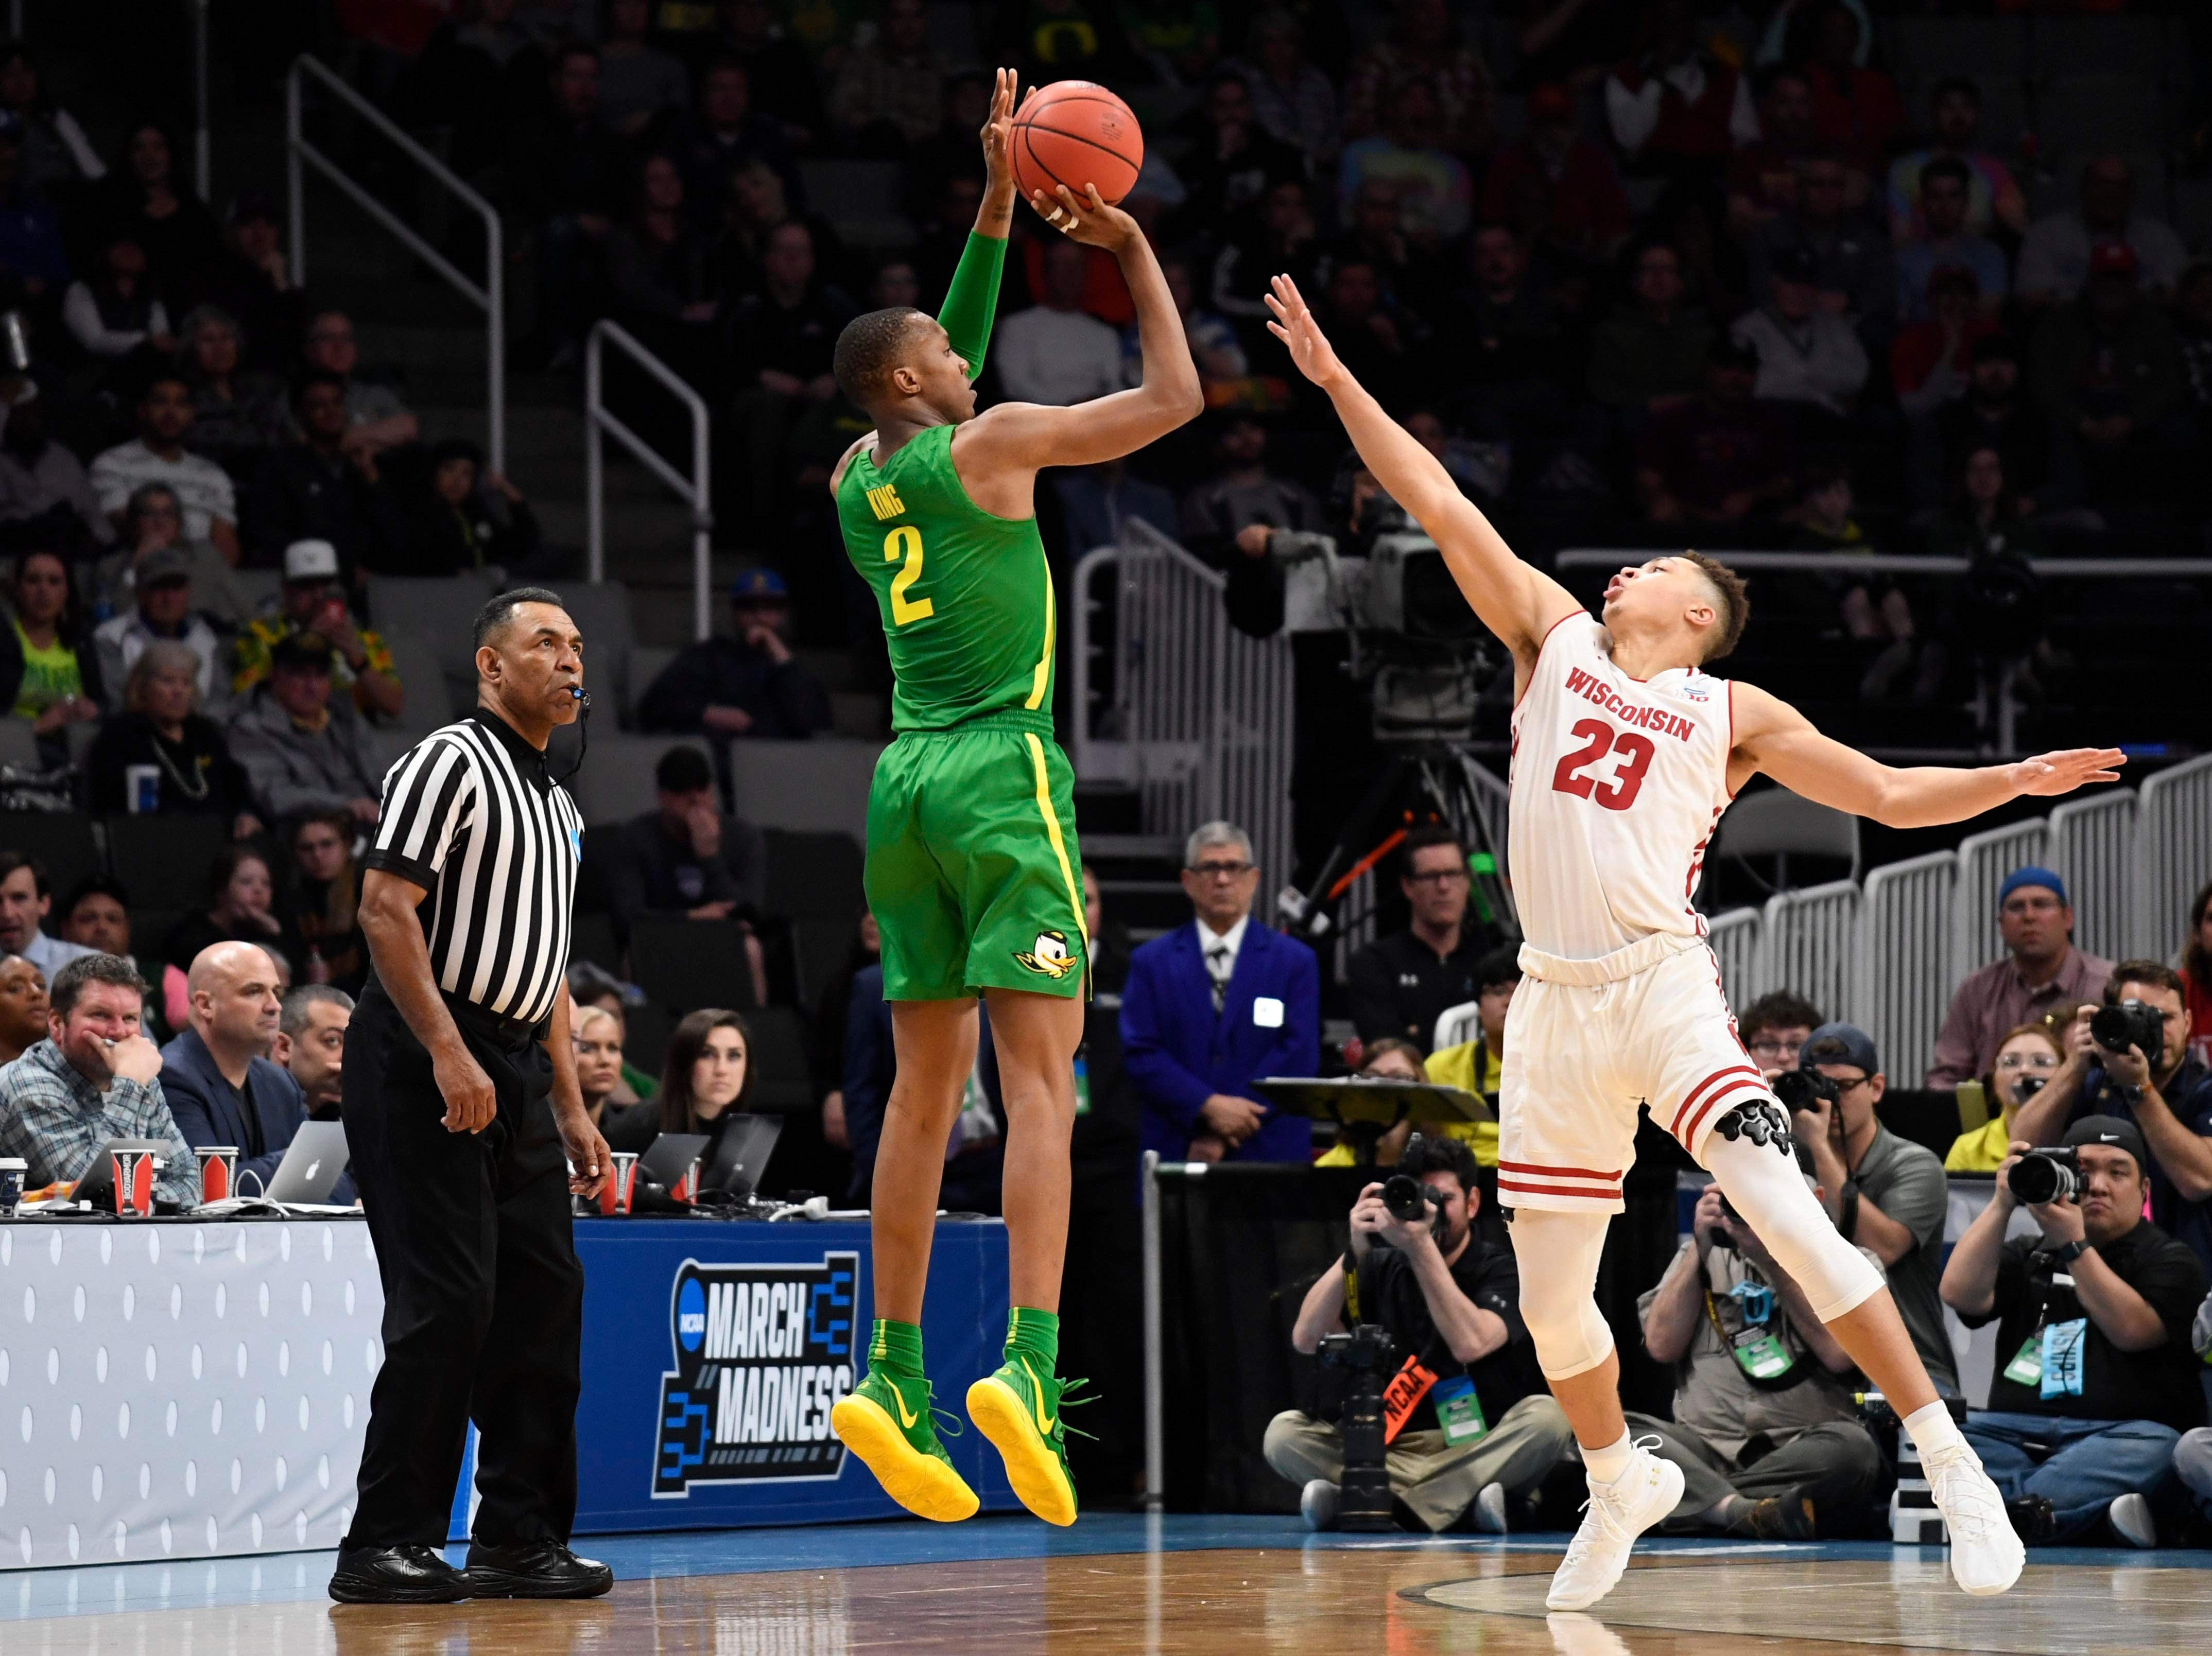 Mar 22, 2019; San Jose, CA, USA; Oregon Ducks forward Louis King (2) shoots as Wisconsin Badgers guard Kobe King (23) defends during the second half in the first round of the 2019 NCAA Tournament at SAP Center. Mandatory Credit: Kelley L Cox-USA TODAY Sports